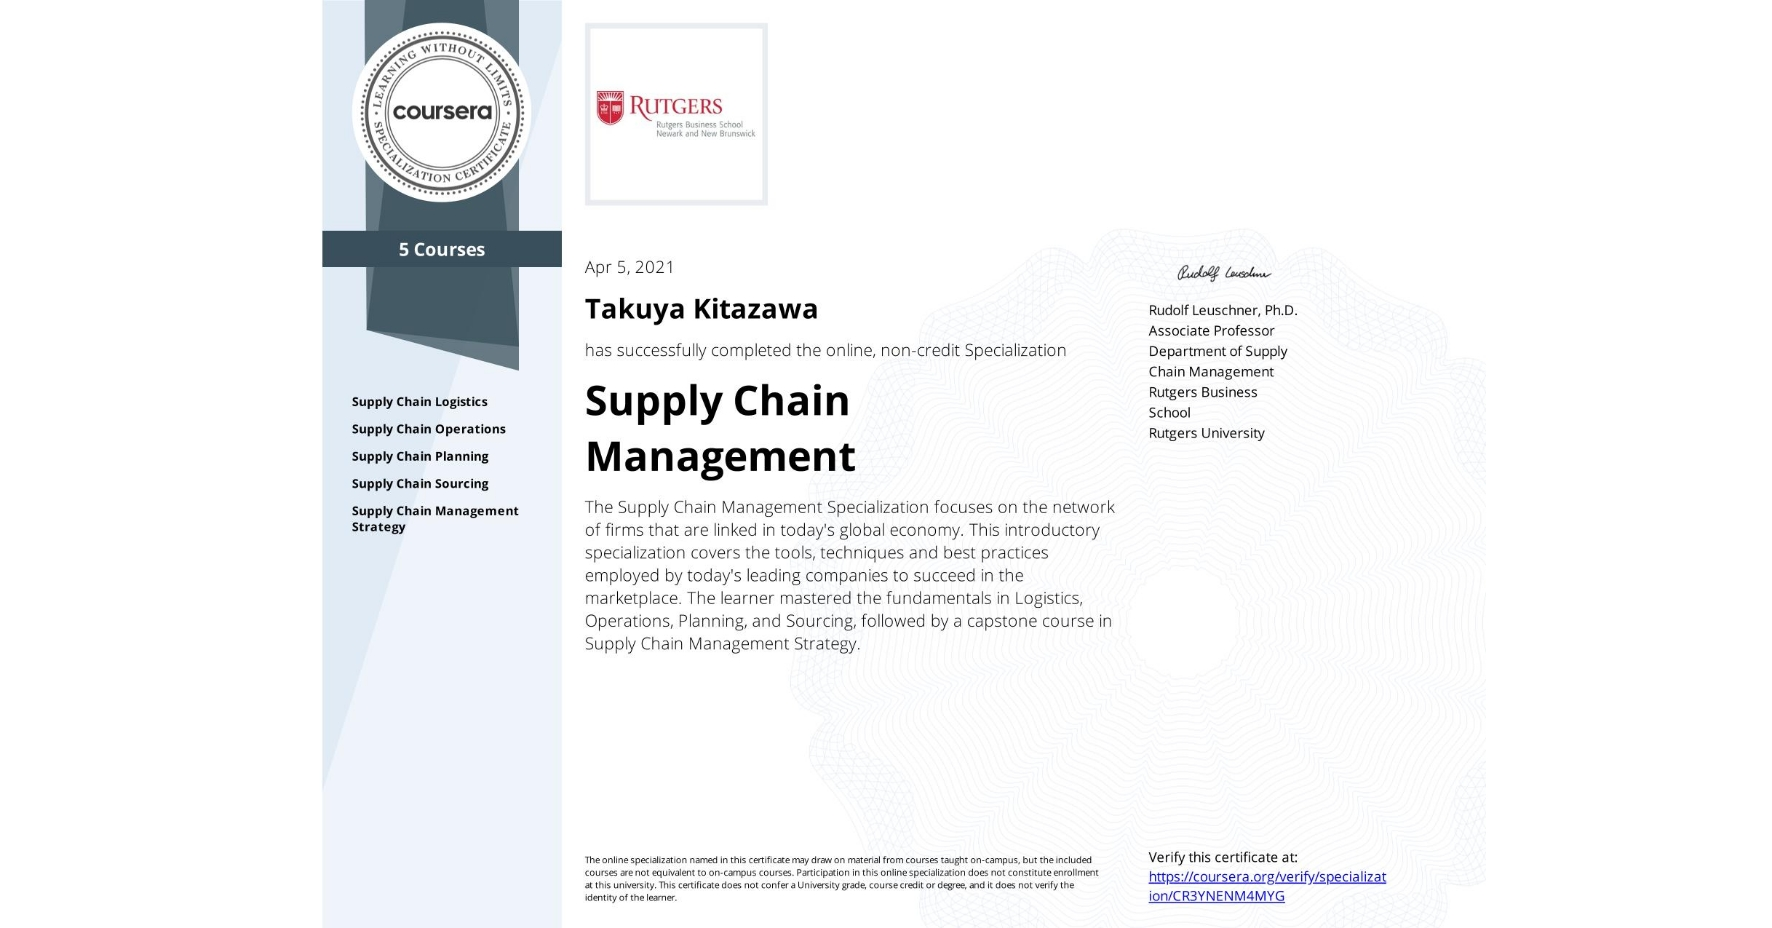 View certificate for Takuya Kitazawa, Supply Chain Management, offered through Coursera. The Supply Chain Management Specialization focuses on the network of firms that are linked in today's global economy. This introductory specialization covers the tools, techniques and best practices employed by today's leading companies to succeed in the marketplace. The learner mastered the fundamentals in Logistics, Operations, Planning, and Sourcing, followed by a capstone course in Supply Chain Management Strategy.